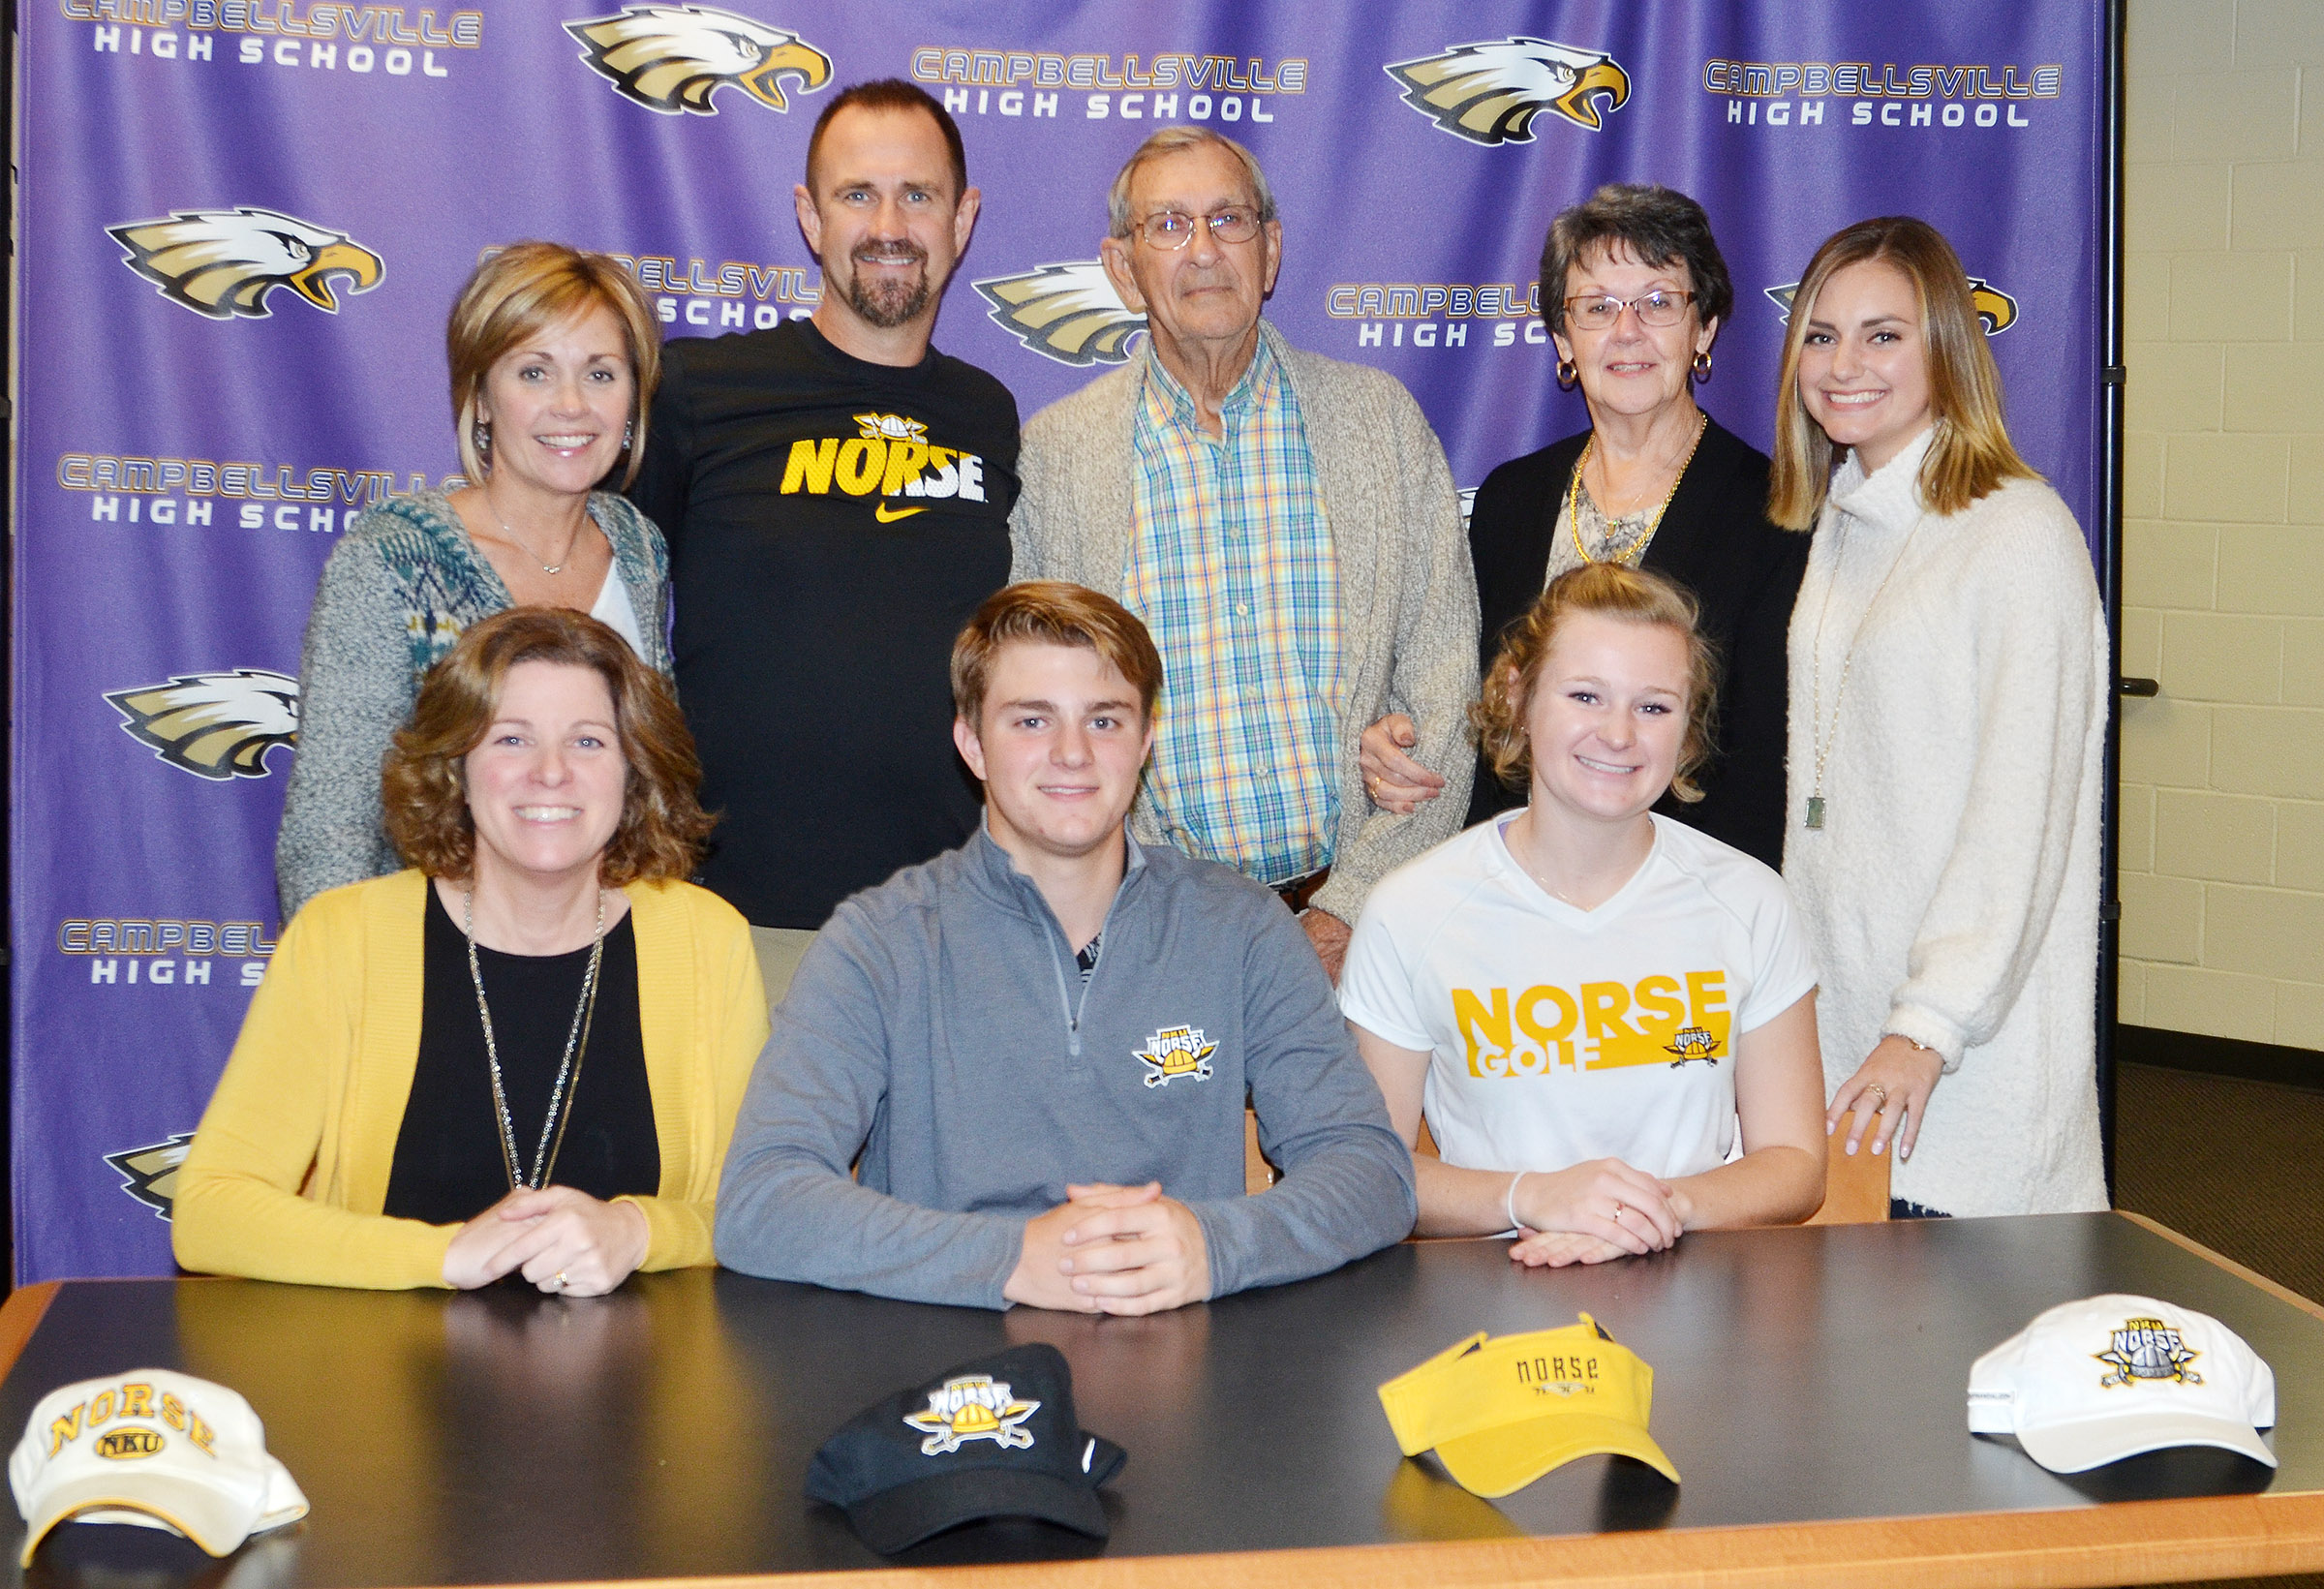 CHS boys' golf player Alex Doss will continue his academic and athletic career at Northern Kentucky University. He recently celebrated the announcement in a reception with his family and friends. Pictured with Doss are his parents, Steve and Dee, sister Kathryn and grandparents.